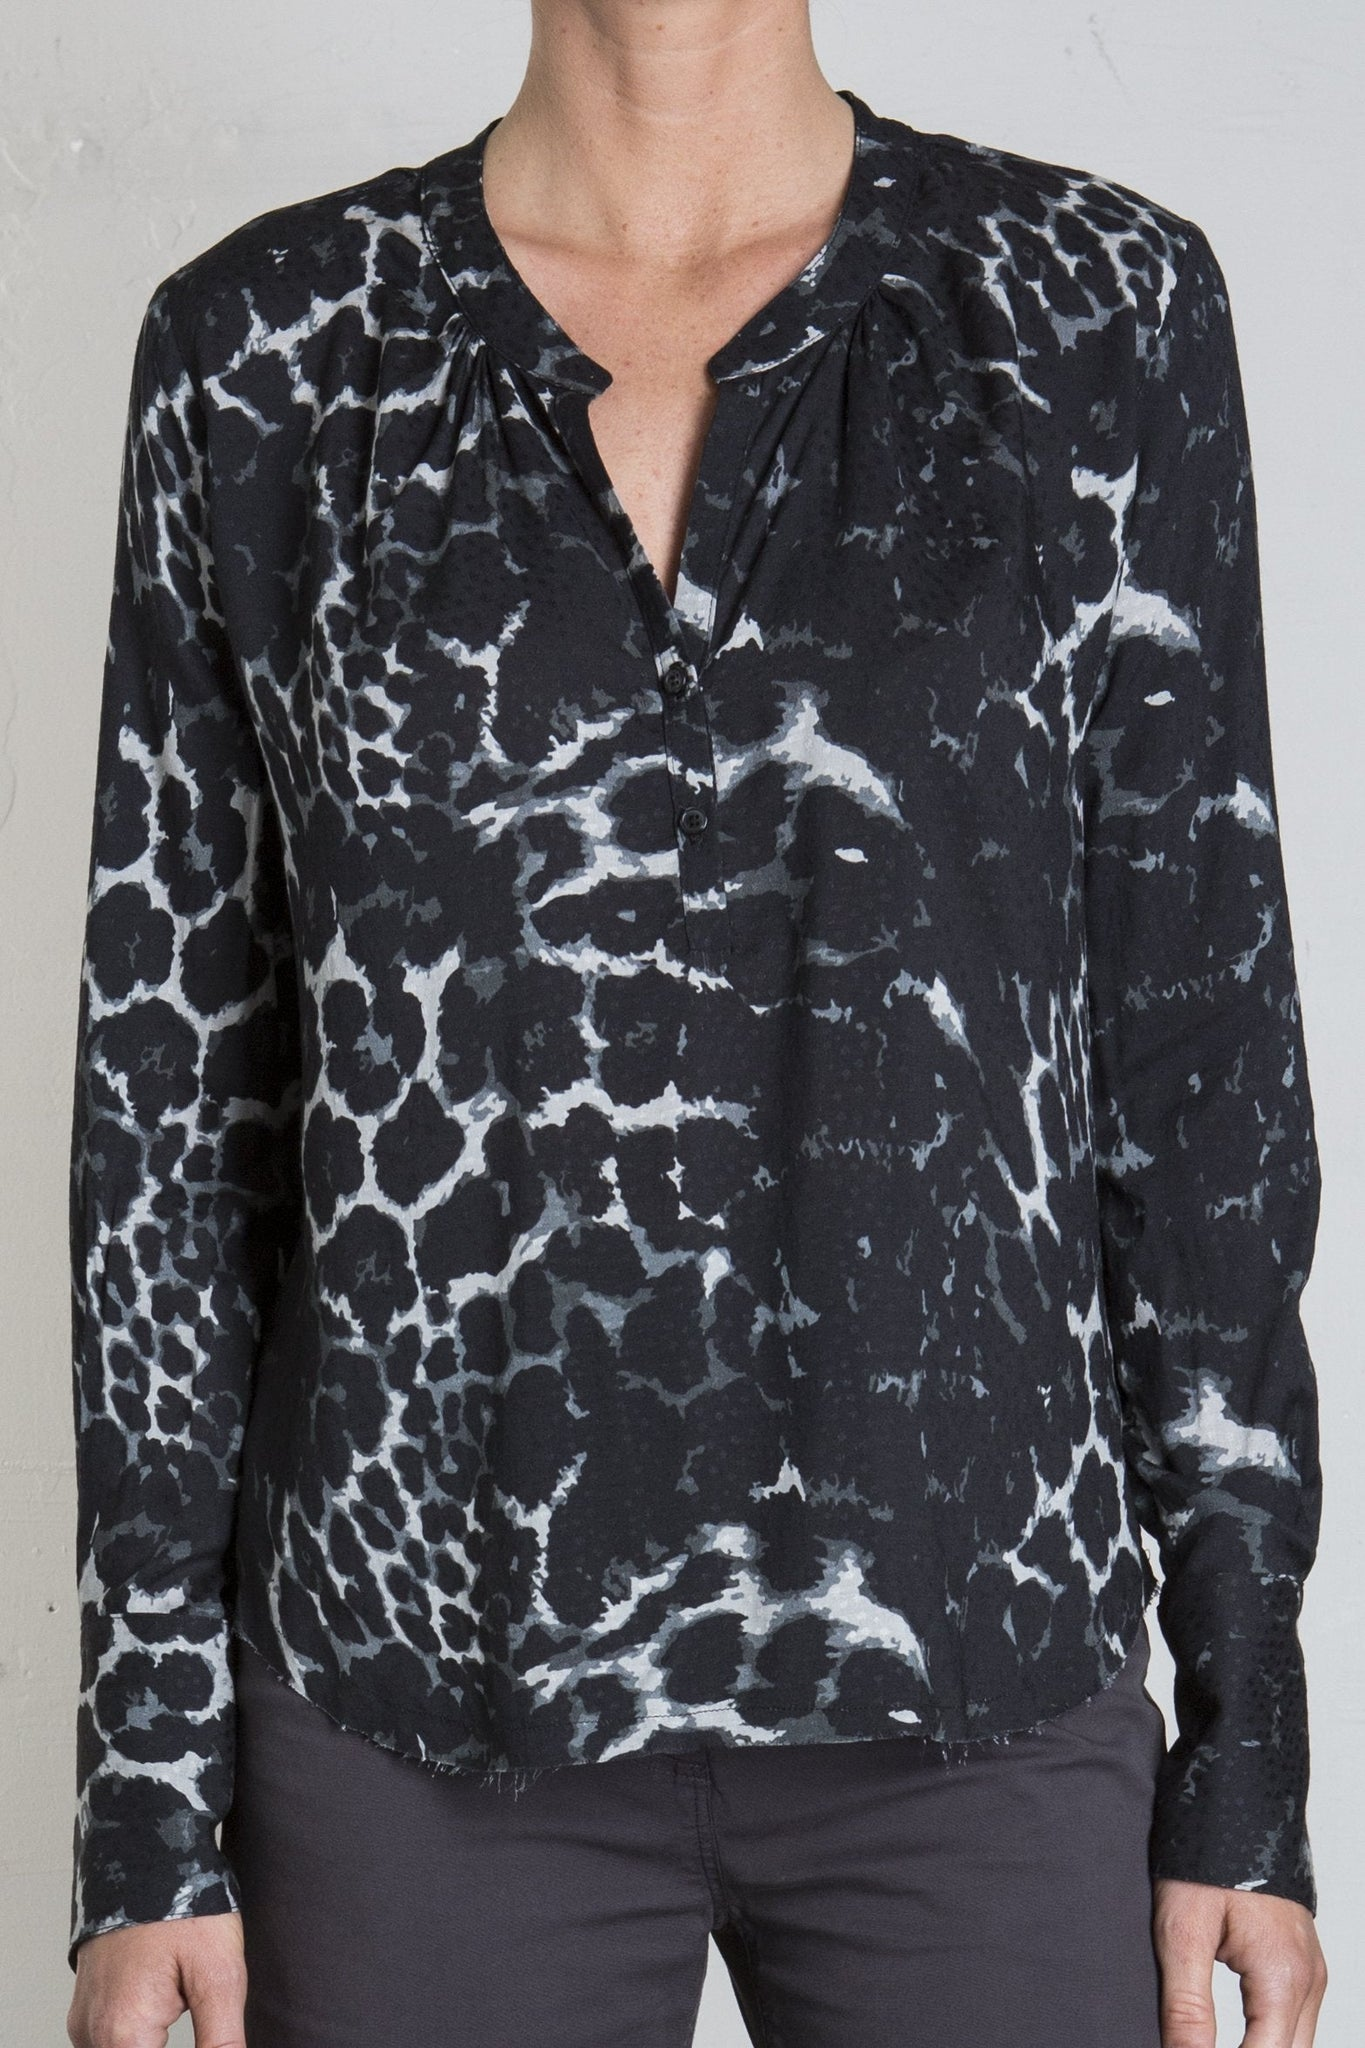 MICHELLE BLOUSE - DARK LEOPARD